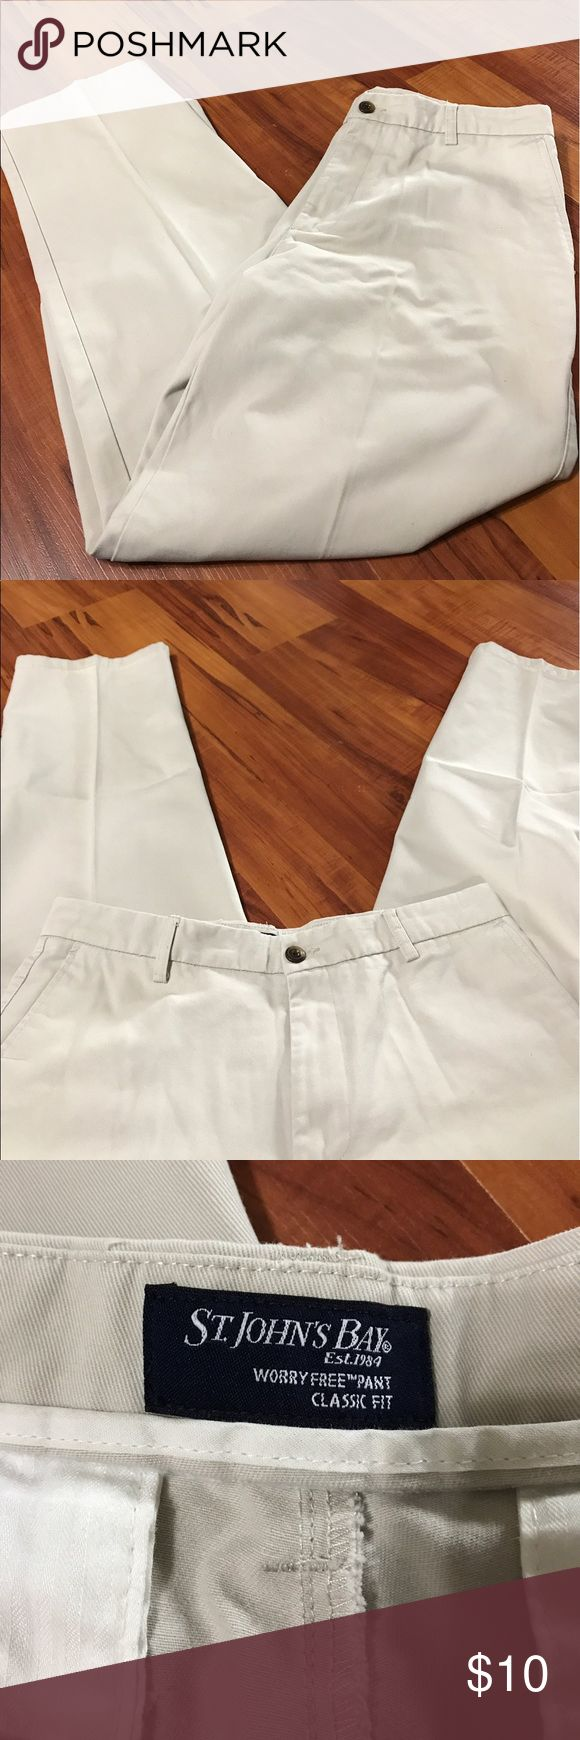 St. John's Bay men's khaki pants St. John's Bay men's khaki pants classic fit size 34/30. In good used condition. Perfect for date night! St Johns Bay Pants Chinos & Khakis